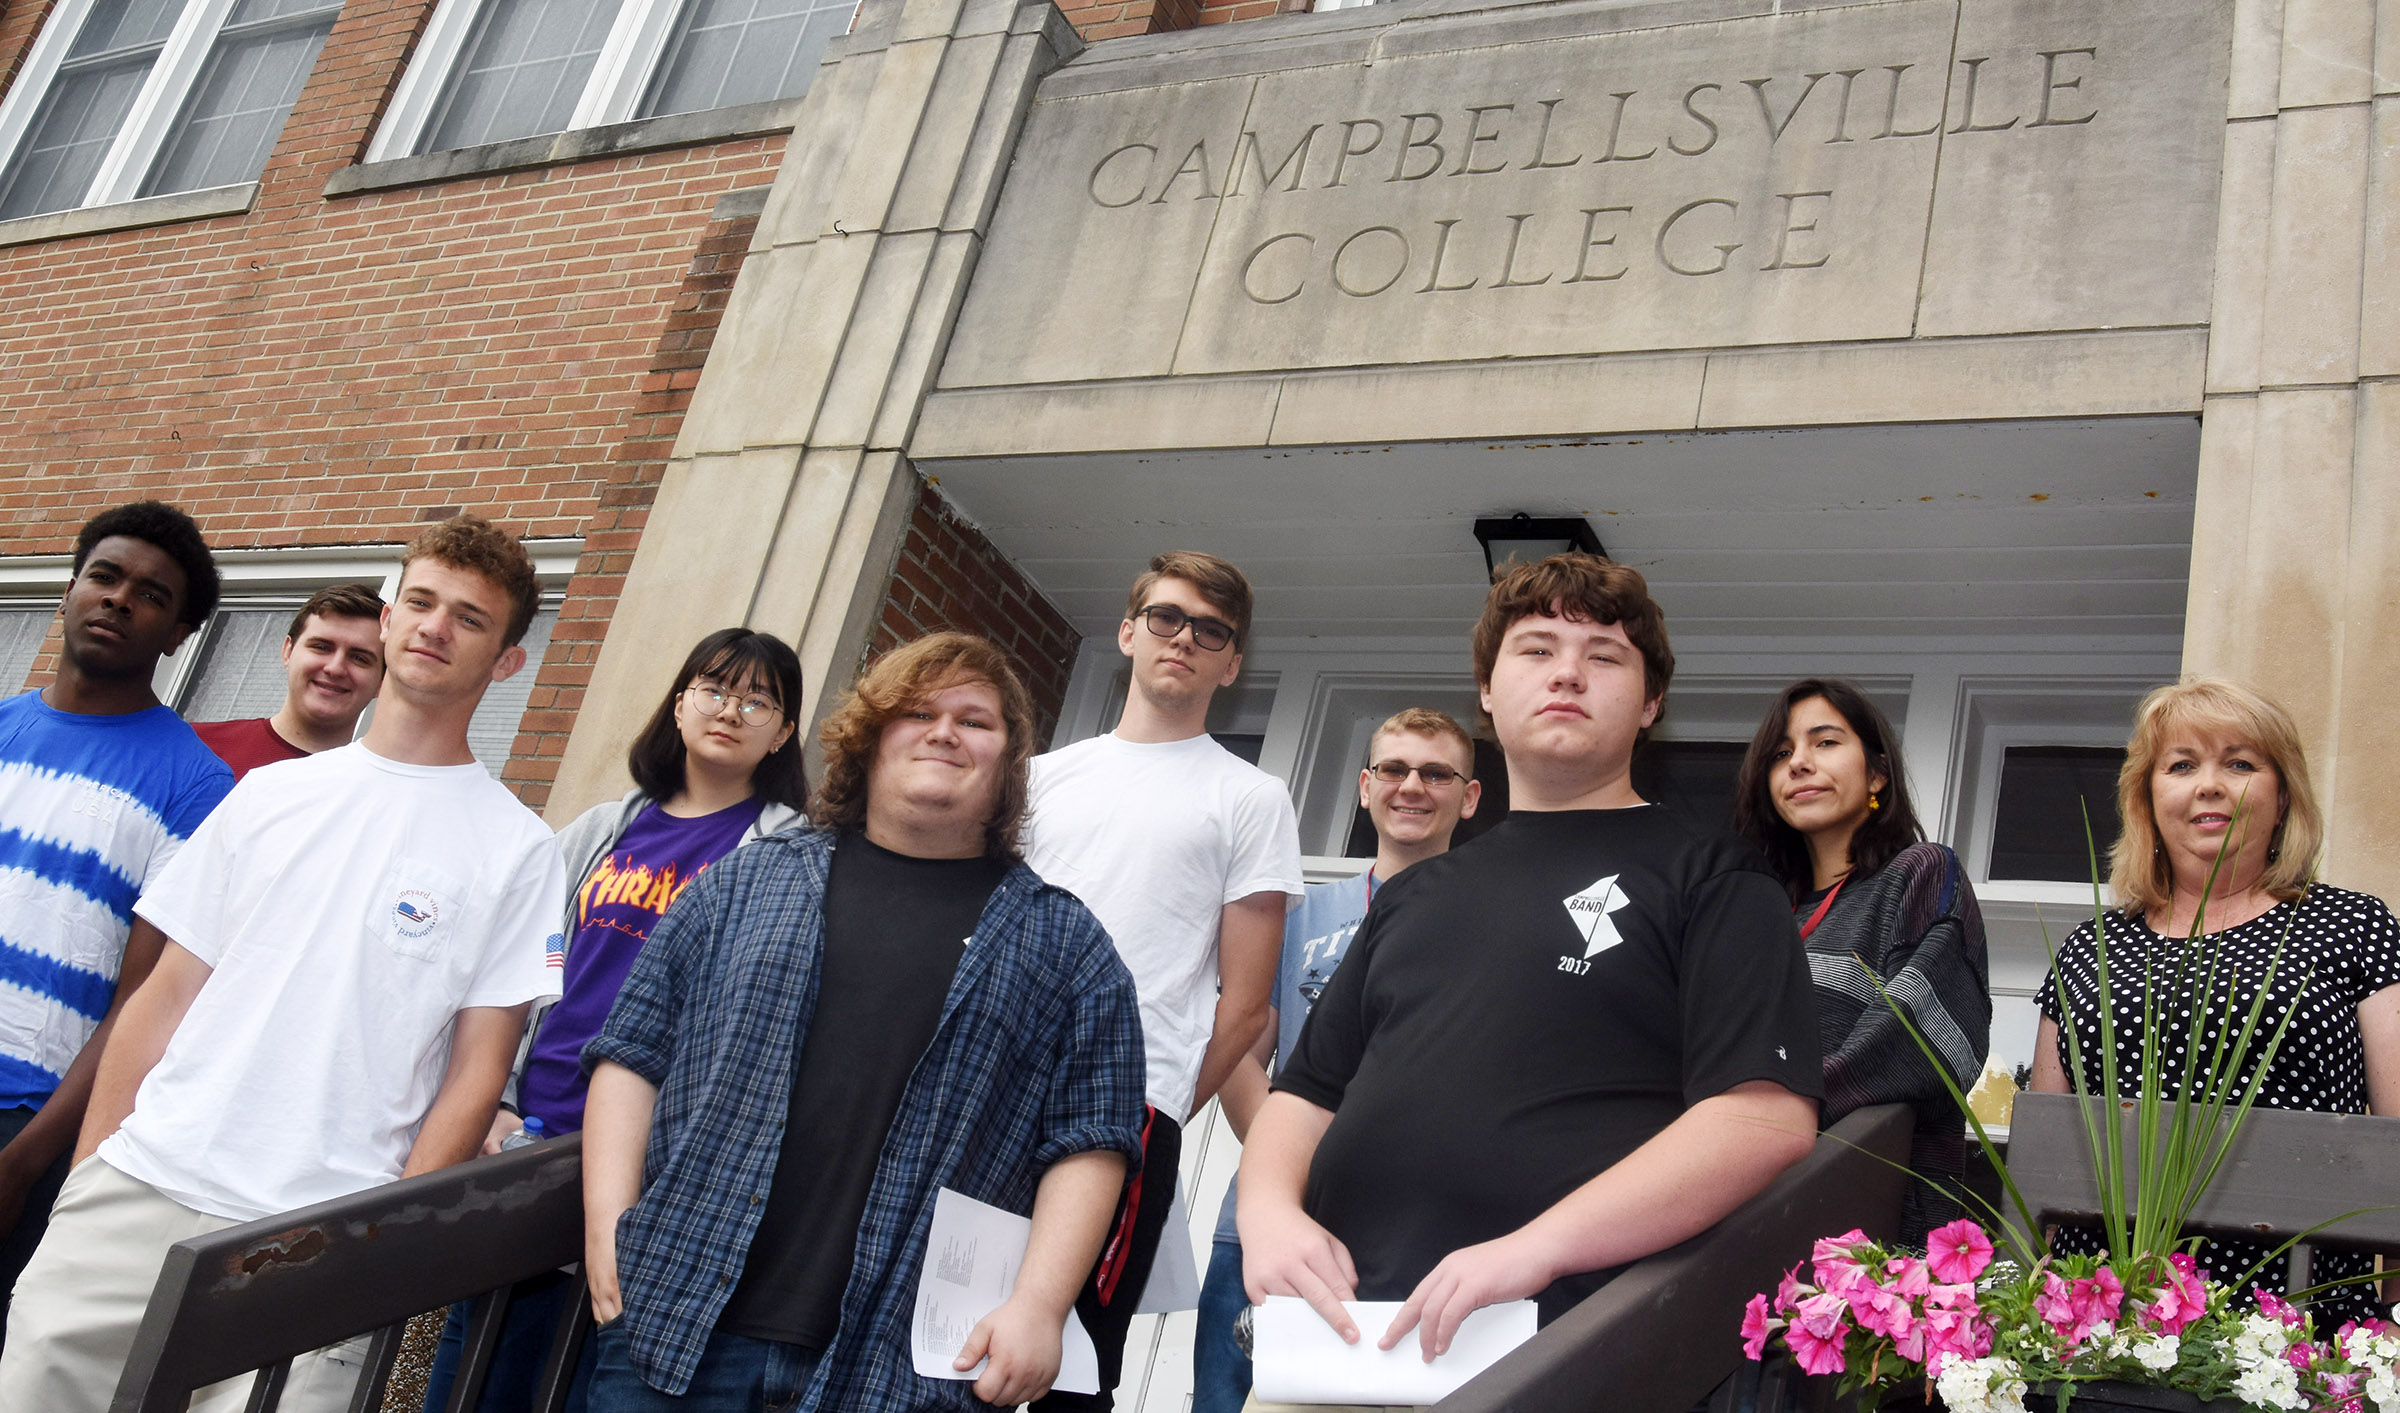 From left, CHS seniors Chanson Atkinson, Austin Fitzgerald, Connor Wilson and Hye Su Cho, junior Randy Harris, senior Christian Berry, junior Brandon Greer, sophomore Conner Riley, junior Celeste Hassman and teacher Sonya Kessler recently took a trip to Campbellsville University to learn about computer science careers.